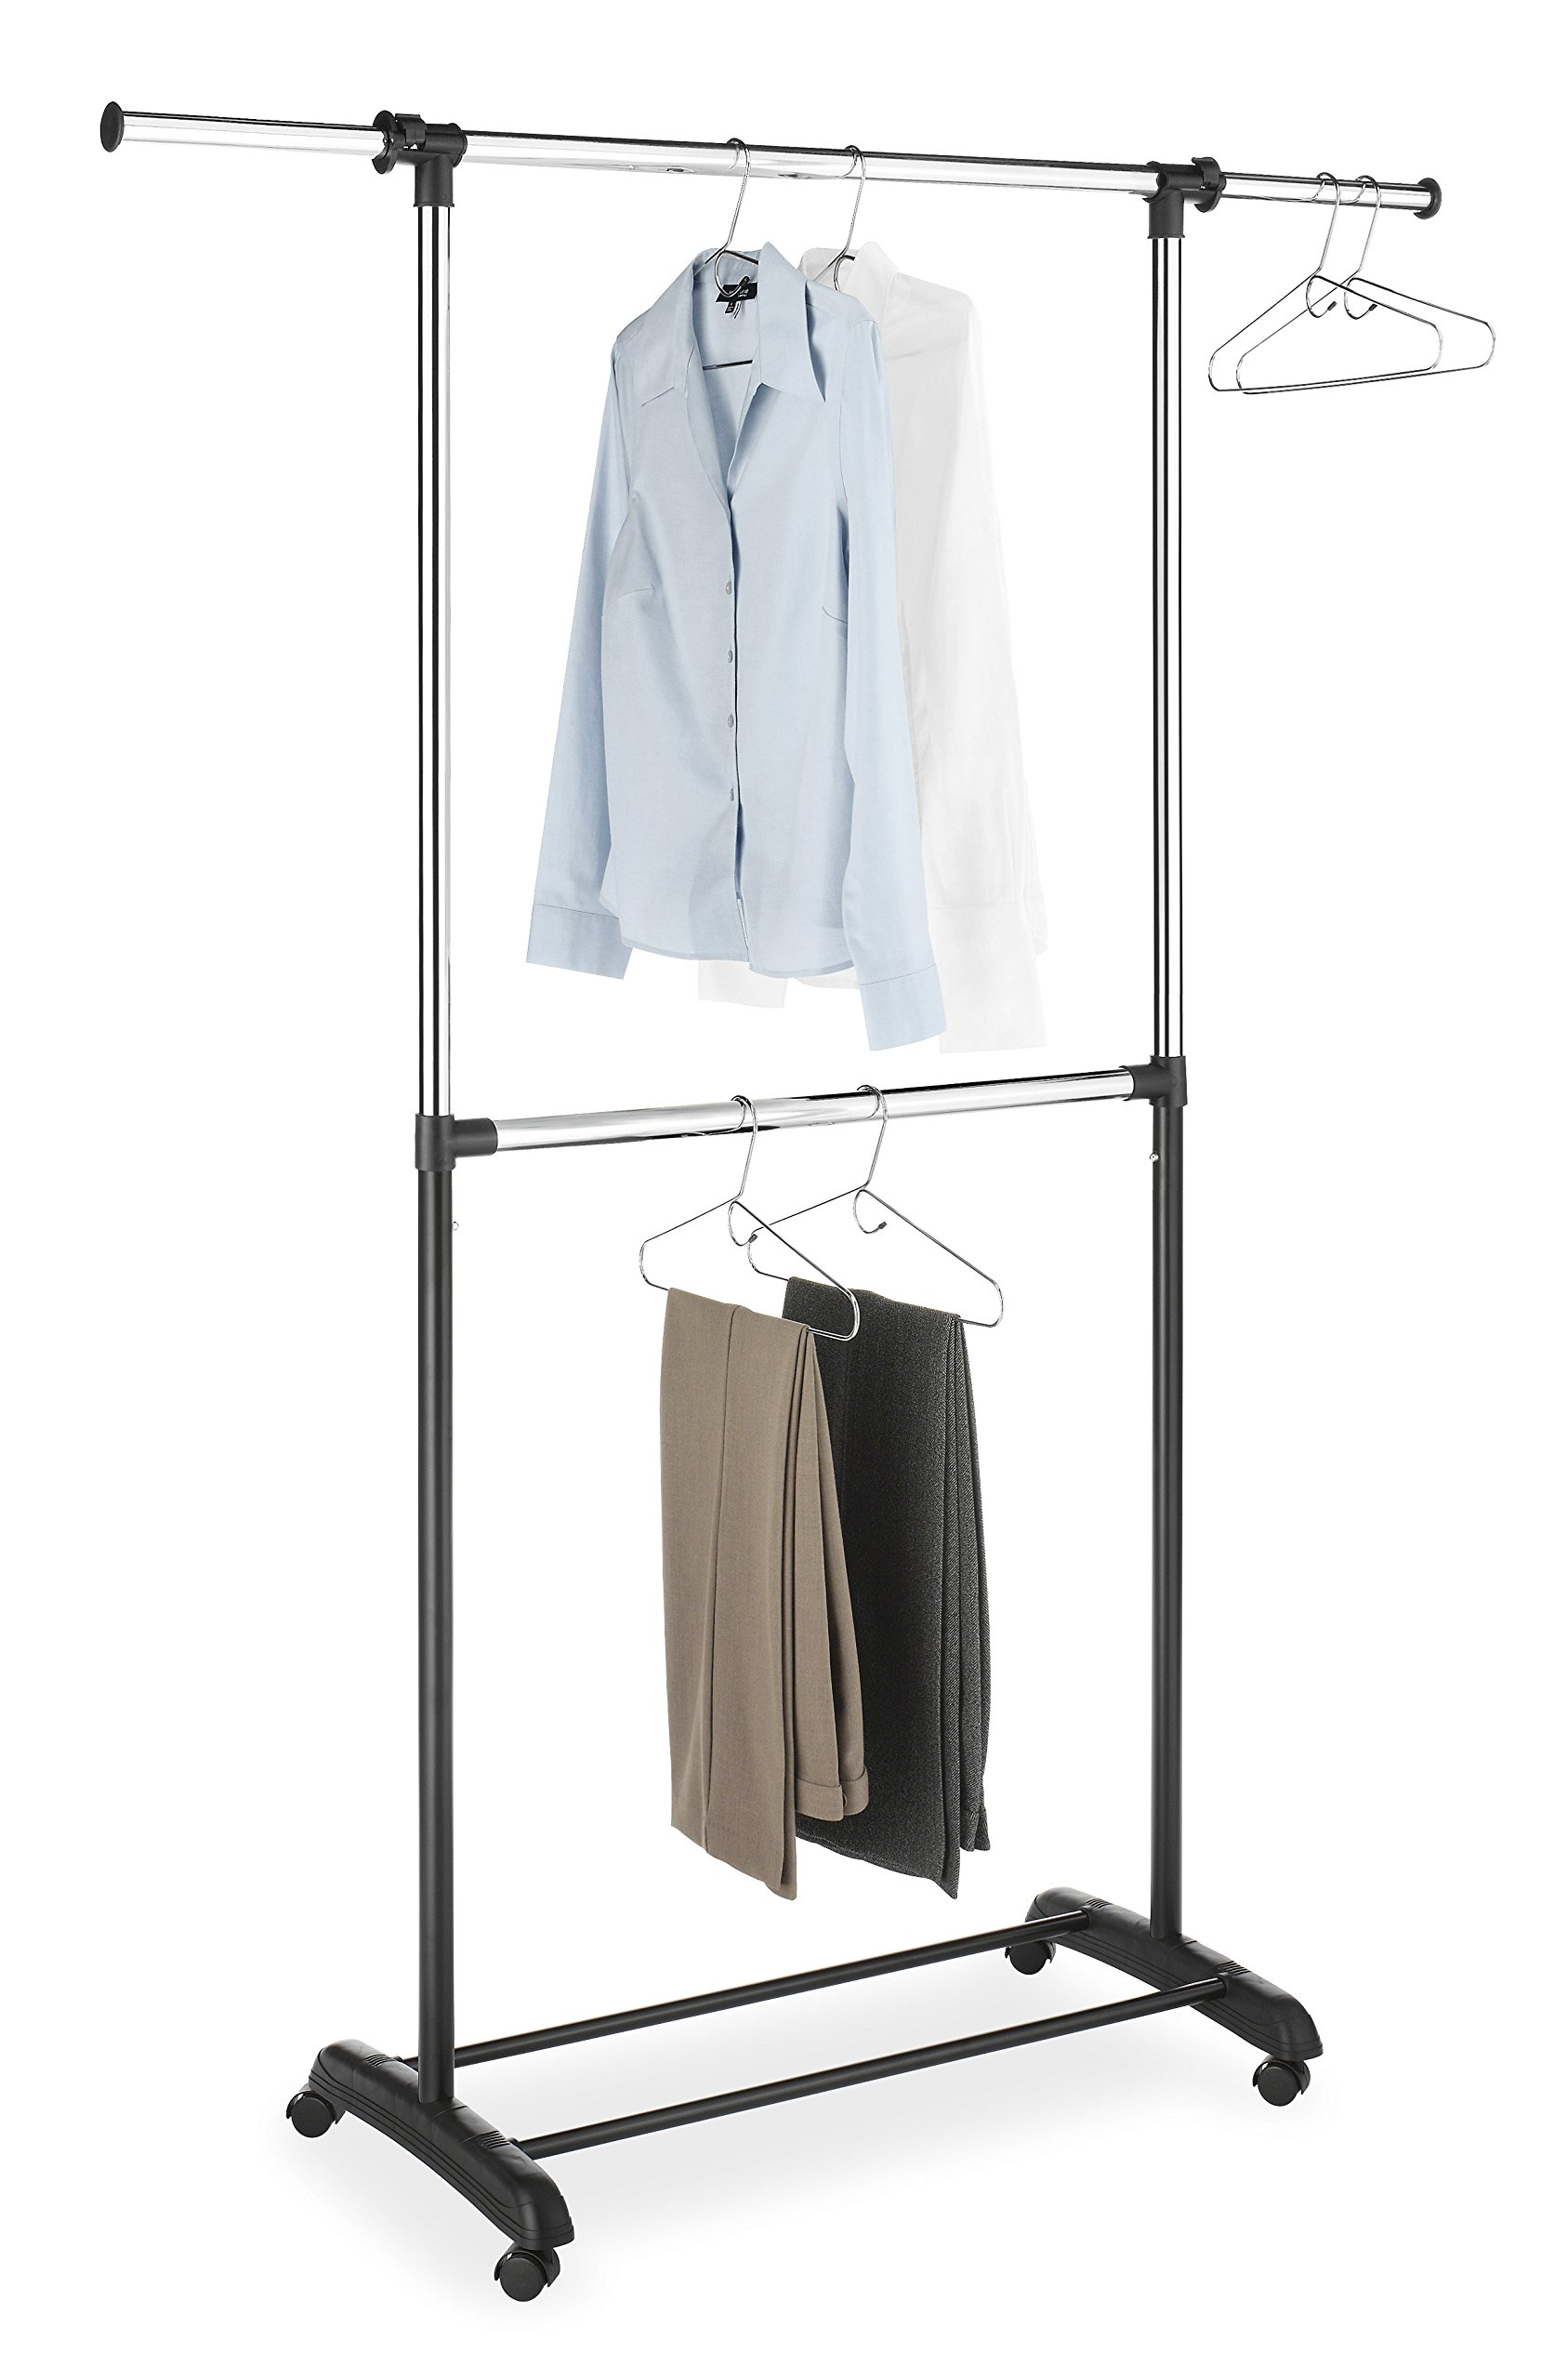 Whitmor Adjustable 2-Rod Garment Rack - Rolling Clothes Organizer - Black and Chrome by Whitmor